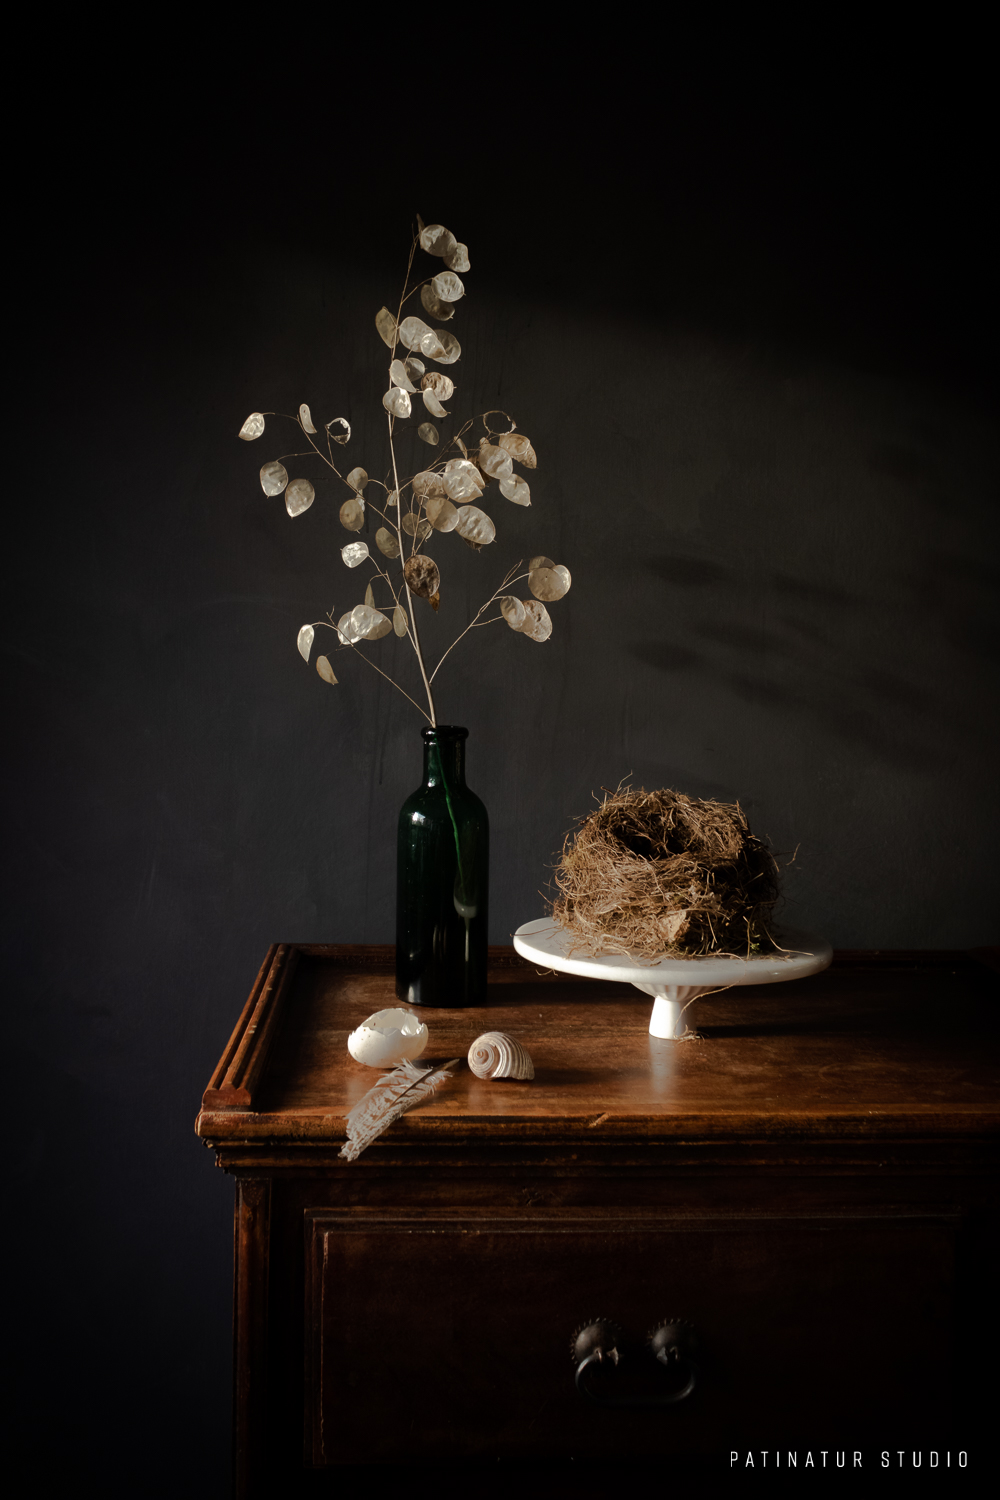 Photo Art | Dark and moody still life with nature's waste